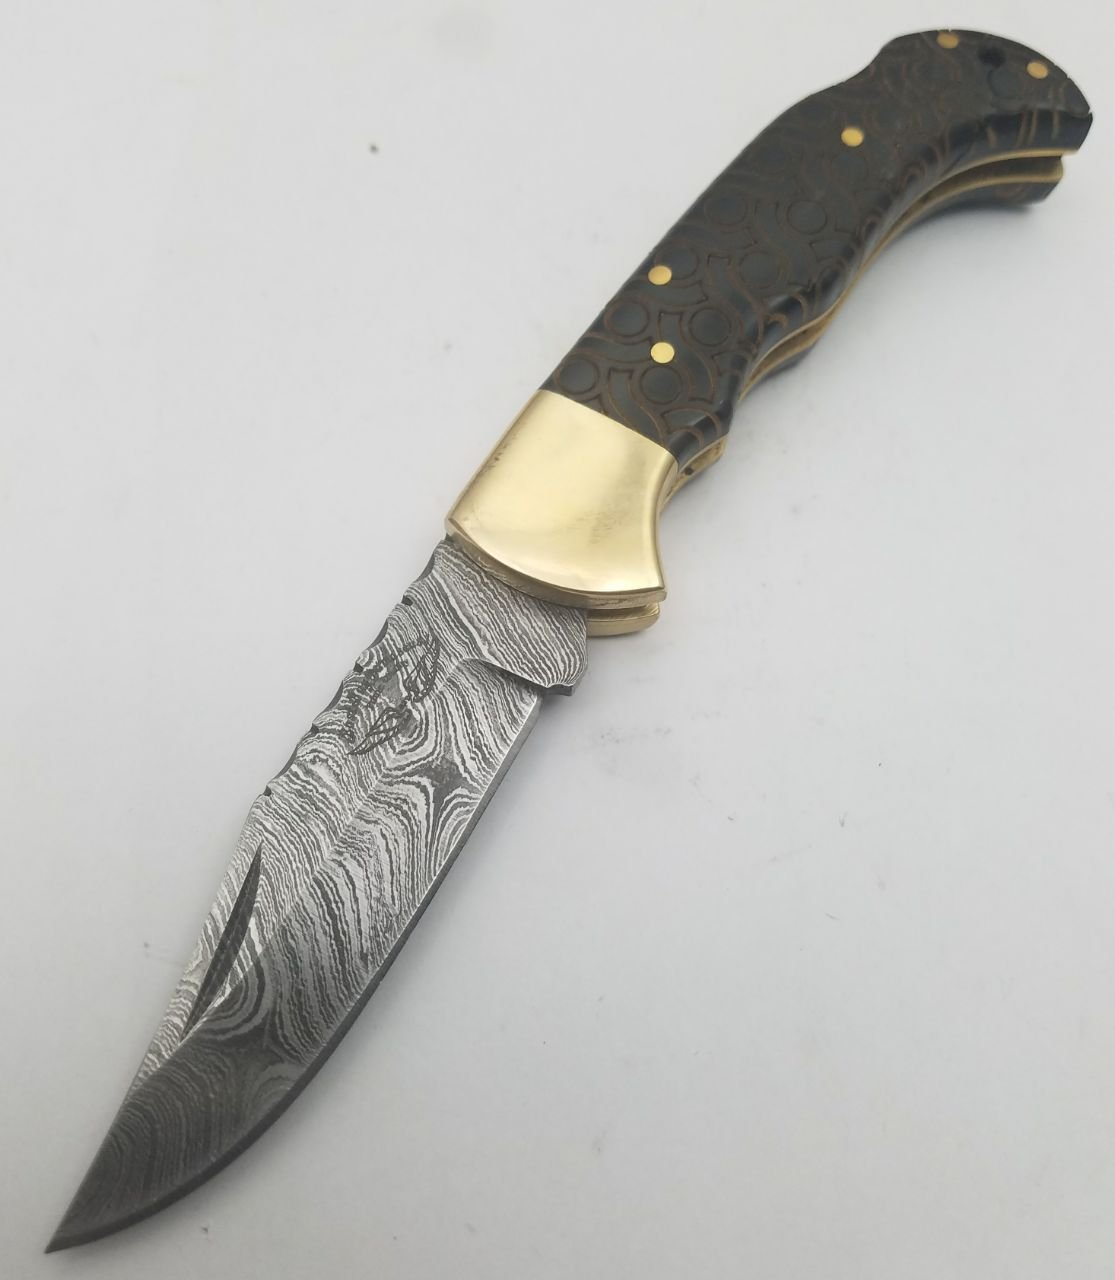 Buffalo Horn 6.5'' Beautiful Engraved Handmade Custom Damascus Steel Brass Bloster Back Lock Folding Pocket Knife 100% Prime Quality with Sharpening Rod